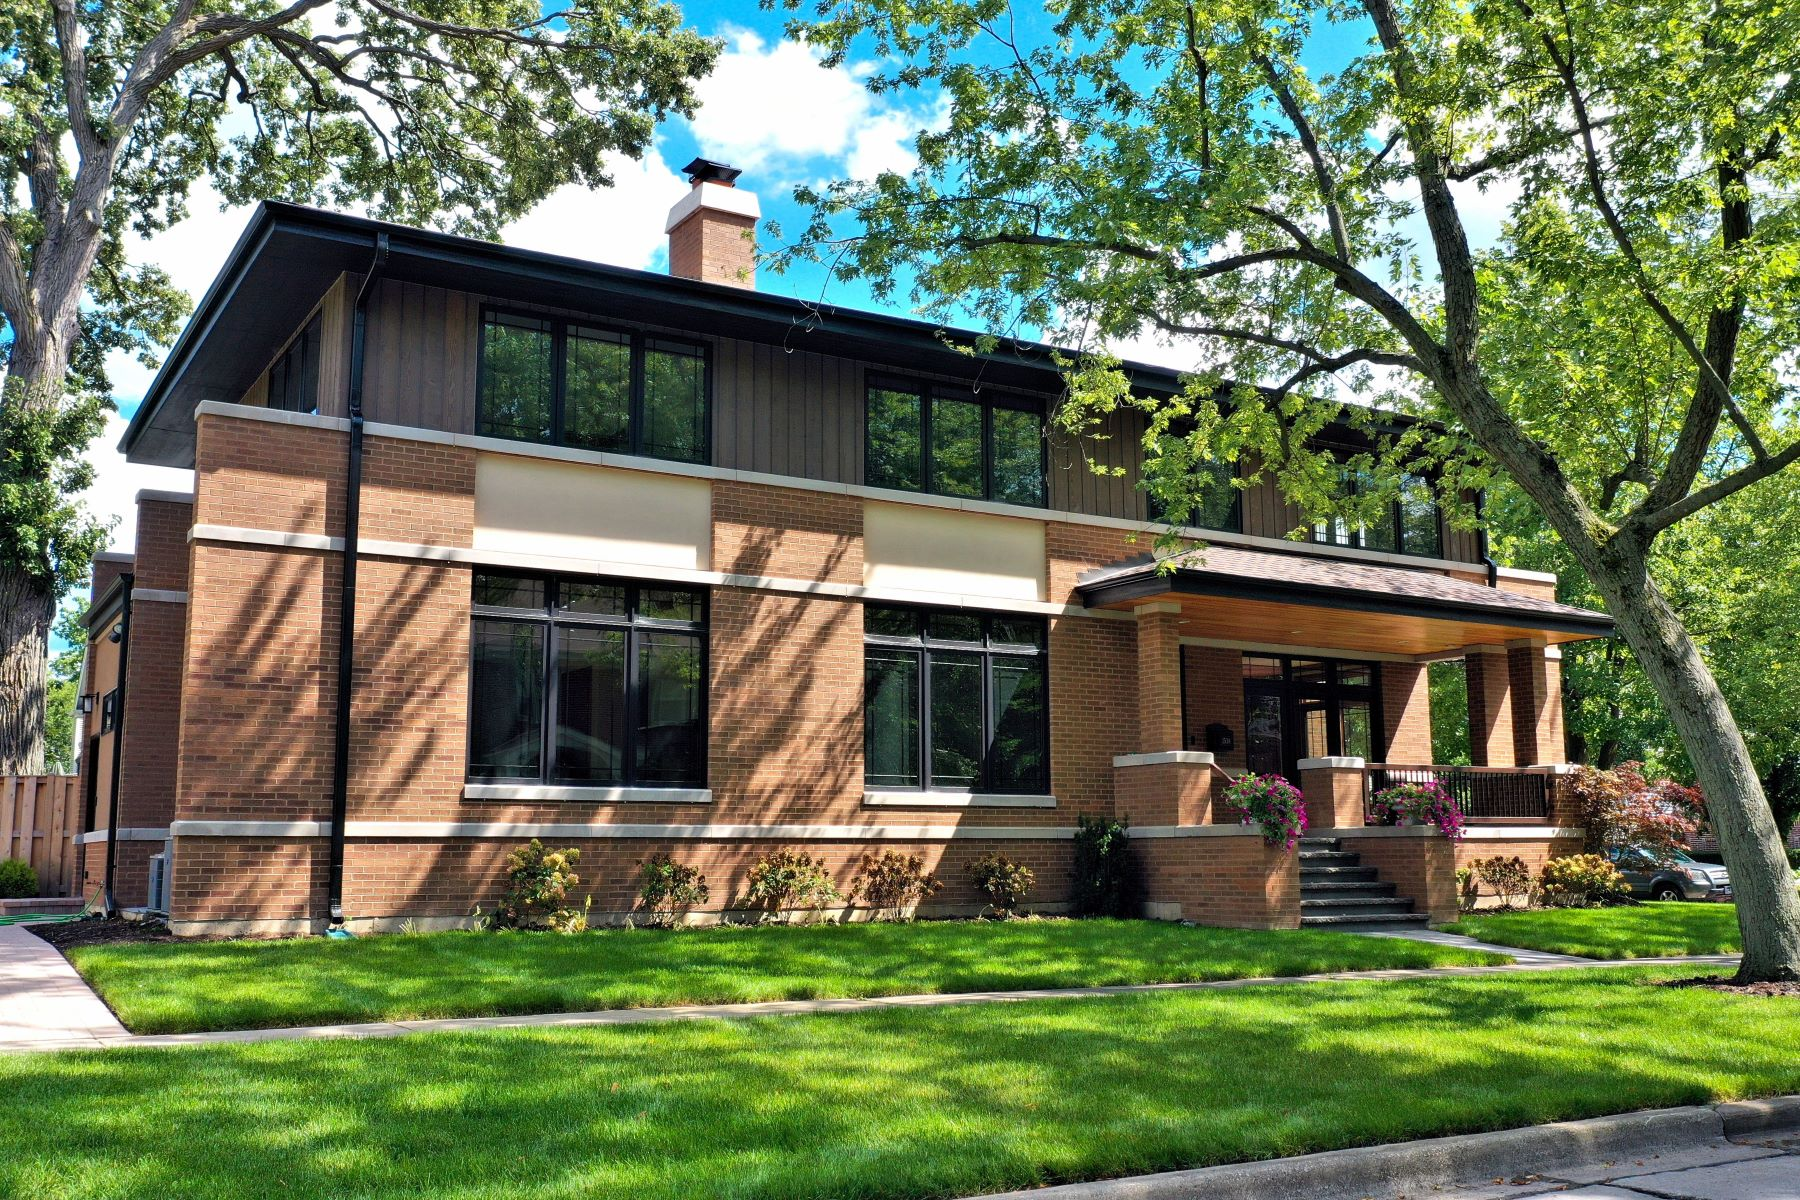 Single Family Homes for Active at Prairie Style Home 1538 Walnut Avenue Wilmette, Illinois 60091 United States